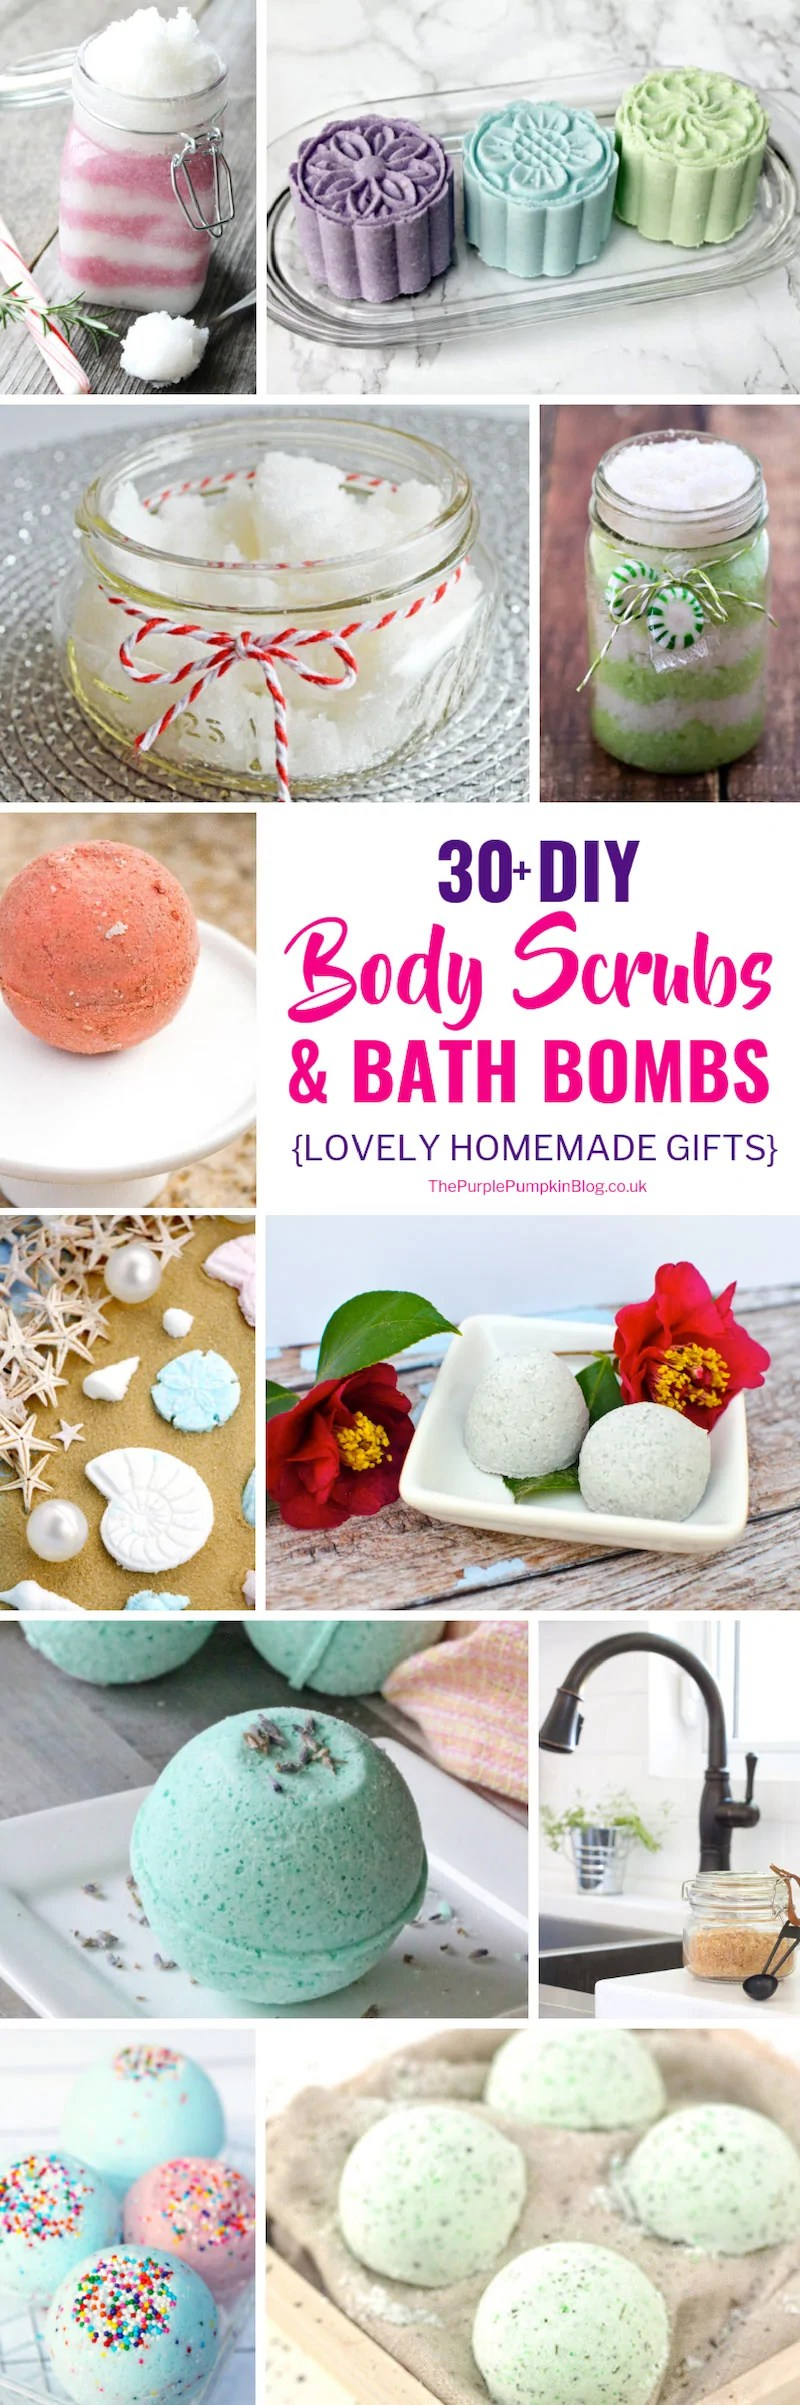 DIY Body Scrubs & Bath Bombs make lovely homemade gifts for Christmas or throughout the year. Some of the supplies used in making these body scrubs and bath bombs can be found at home, so you might be able to get started making them right away! #homemadegifts #diybodyscrubs #diybathbombs #sugarscrubs